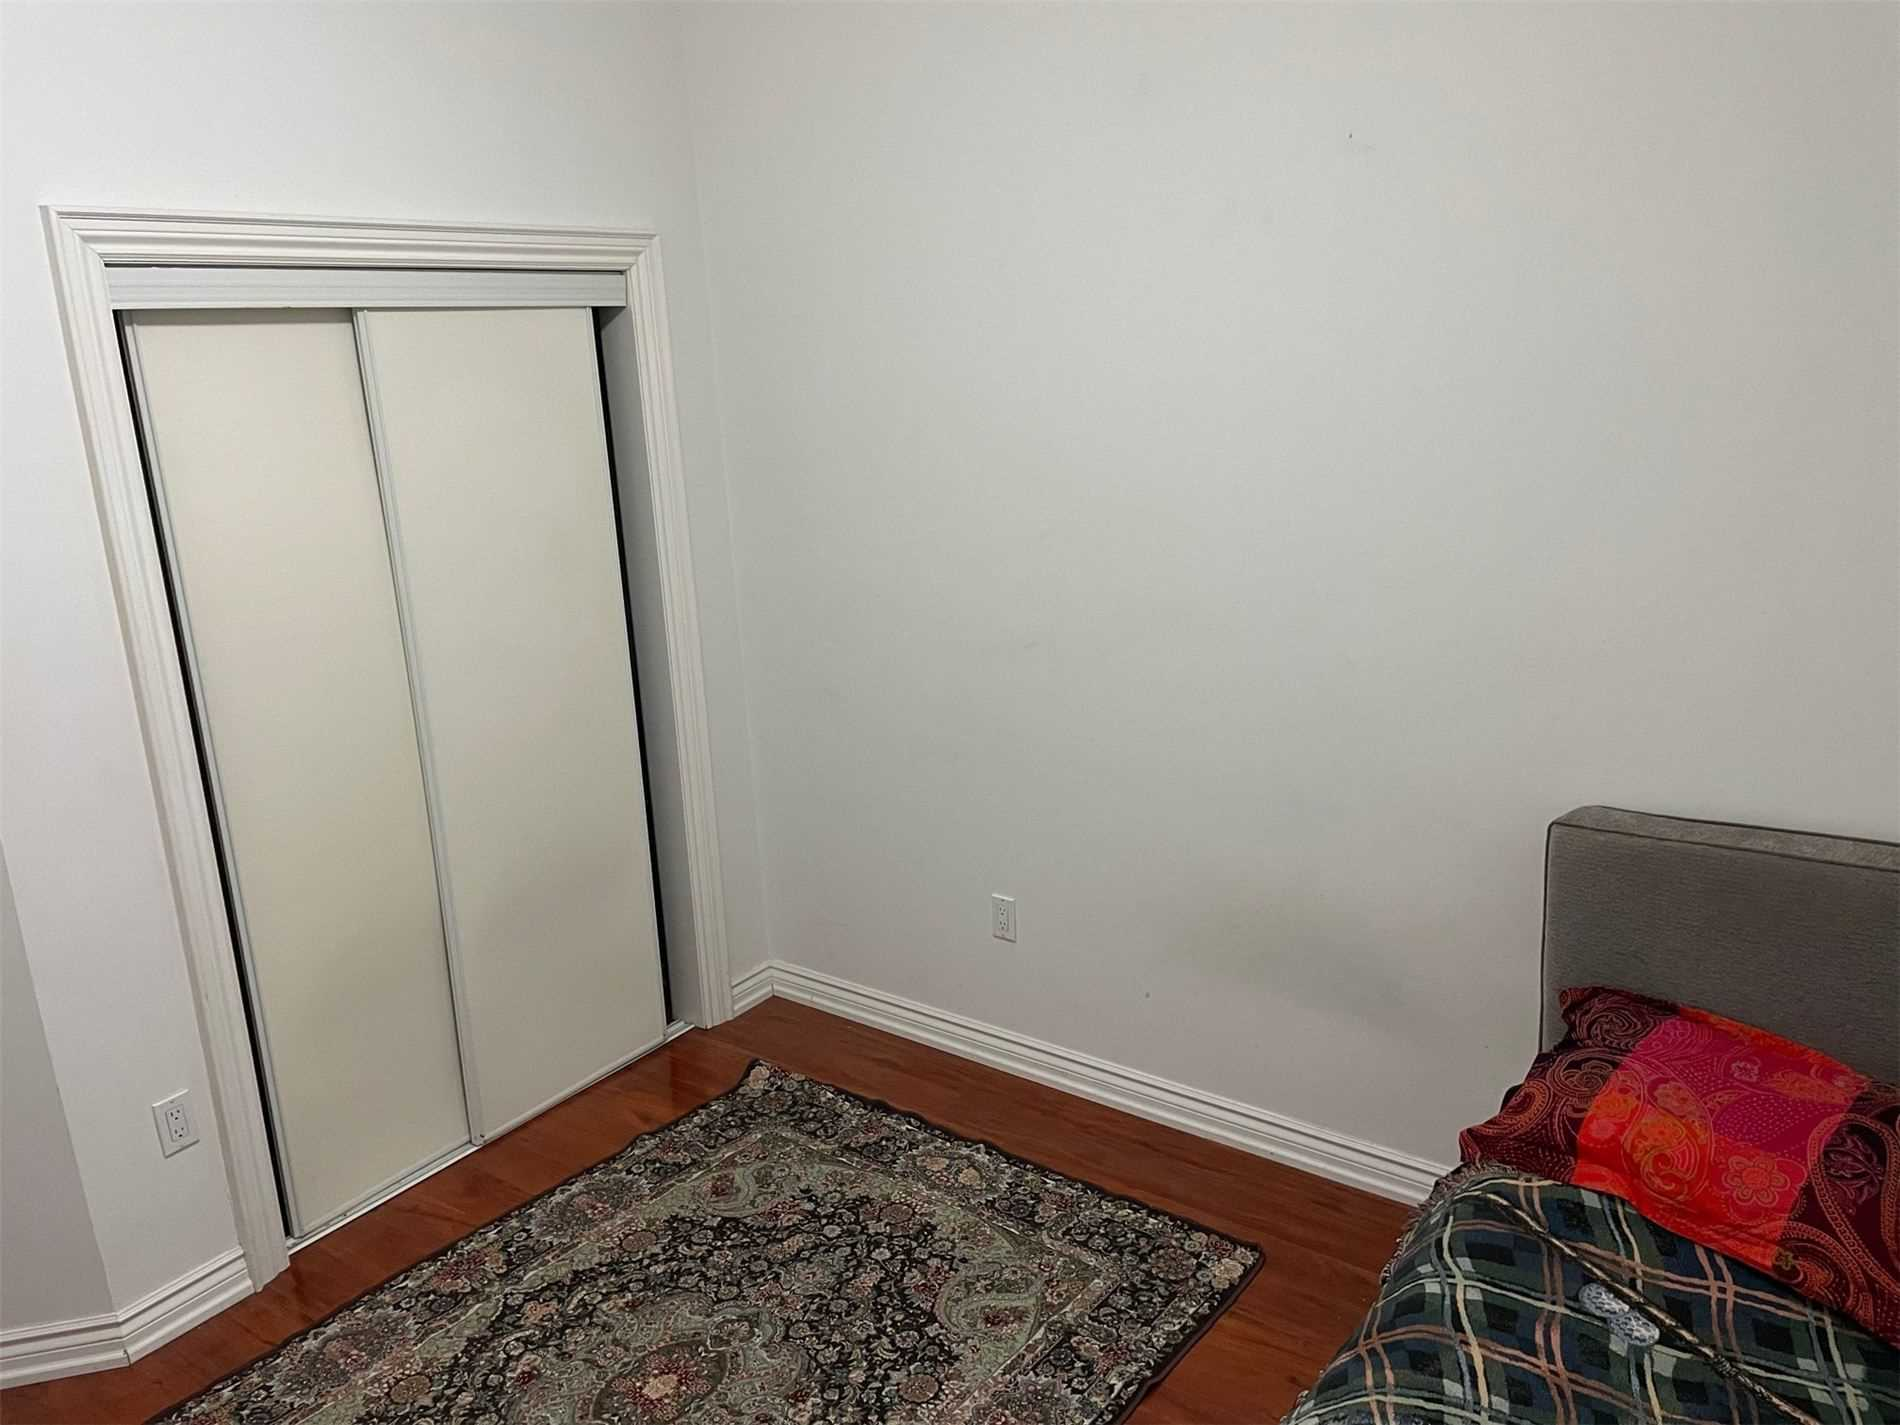 Image 9 of 10 showing inside of 1 Bedroom Detached 2-Storey for Lease at 40 Madawaska Ave, Toronto M2M2P9